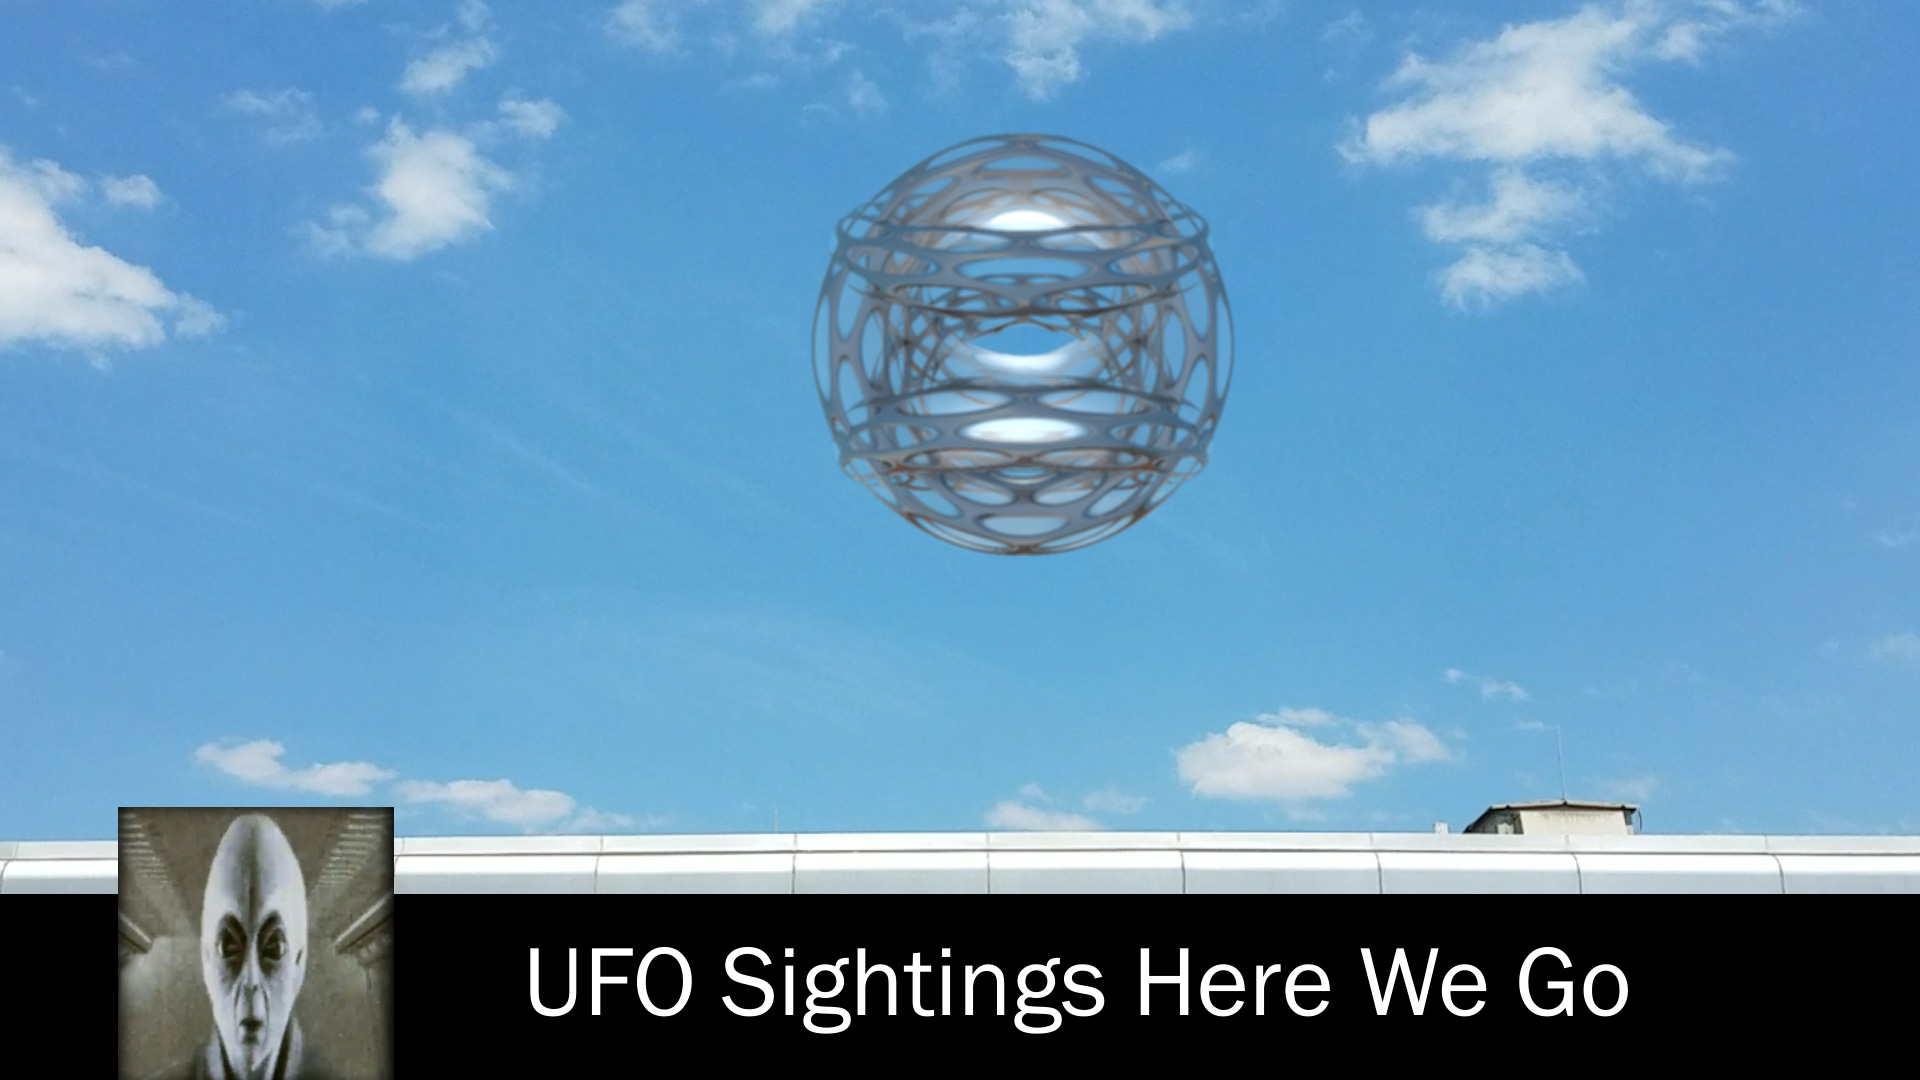 UFO Sightings Here We Go